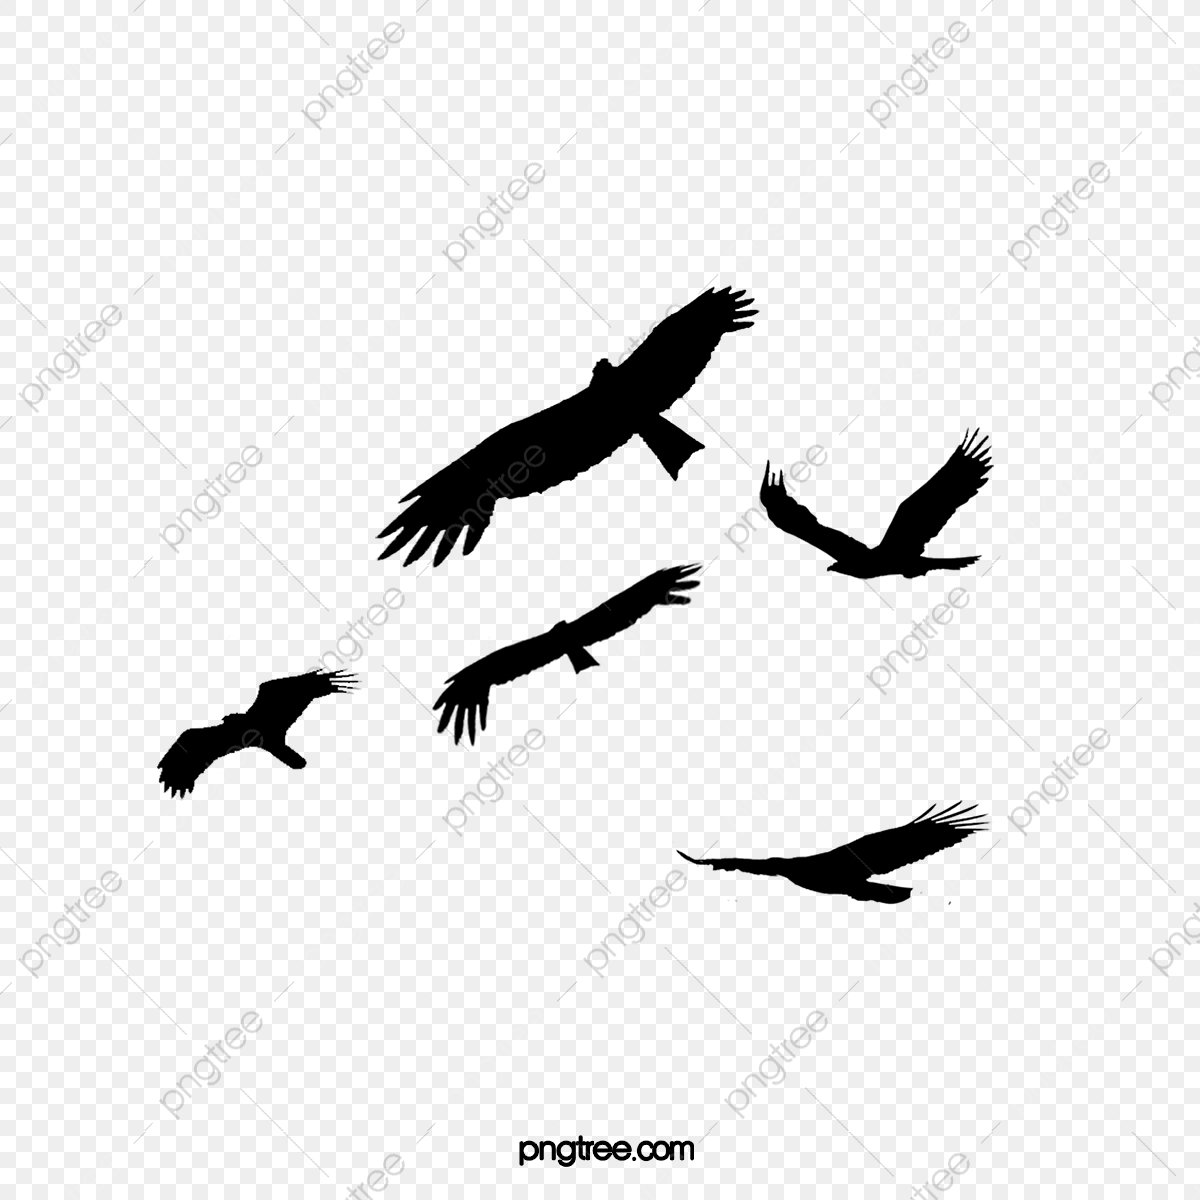 Flying Bird Silhouette, Fly, Bird, Dayan PNG Transparent Clipart